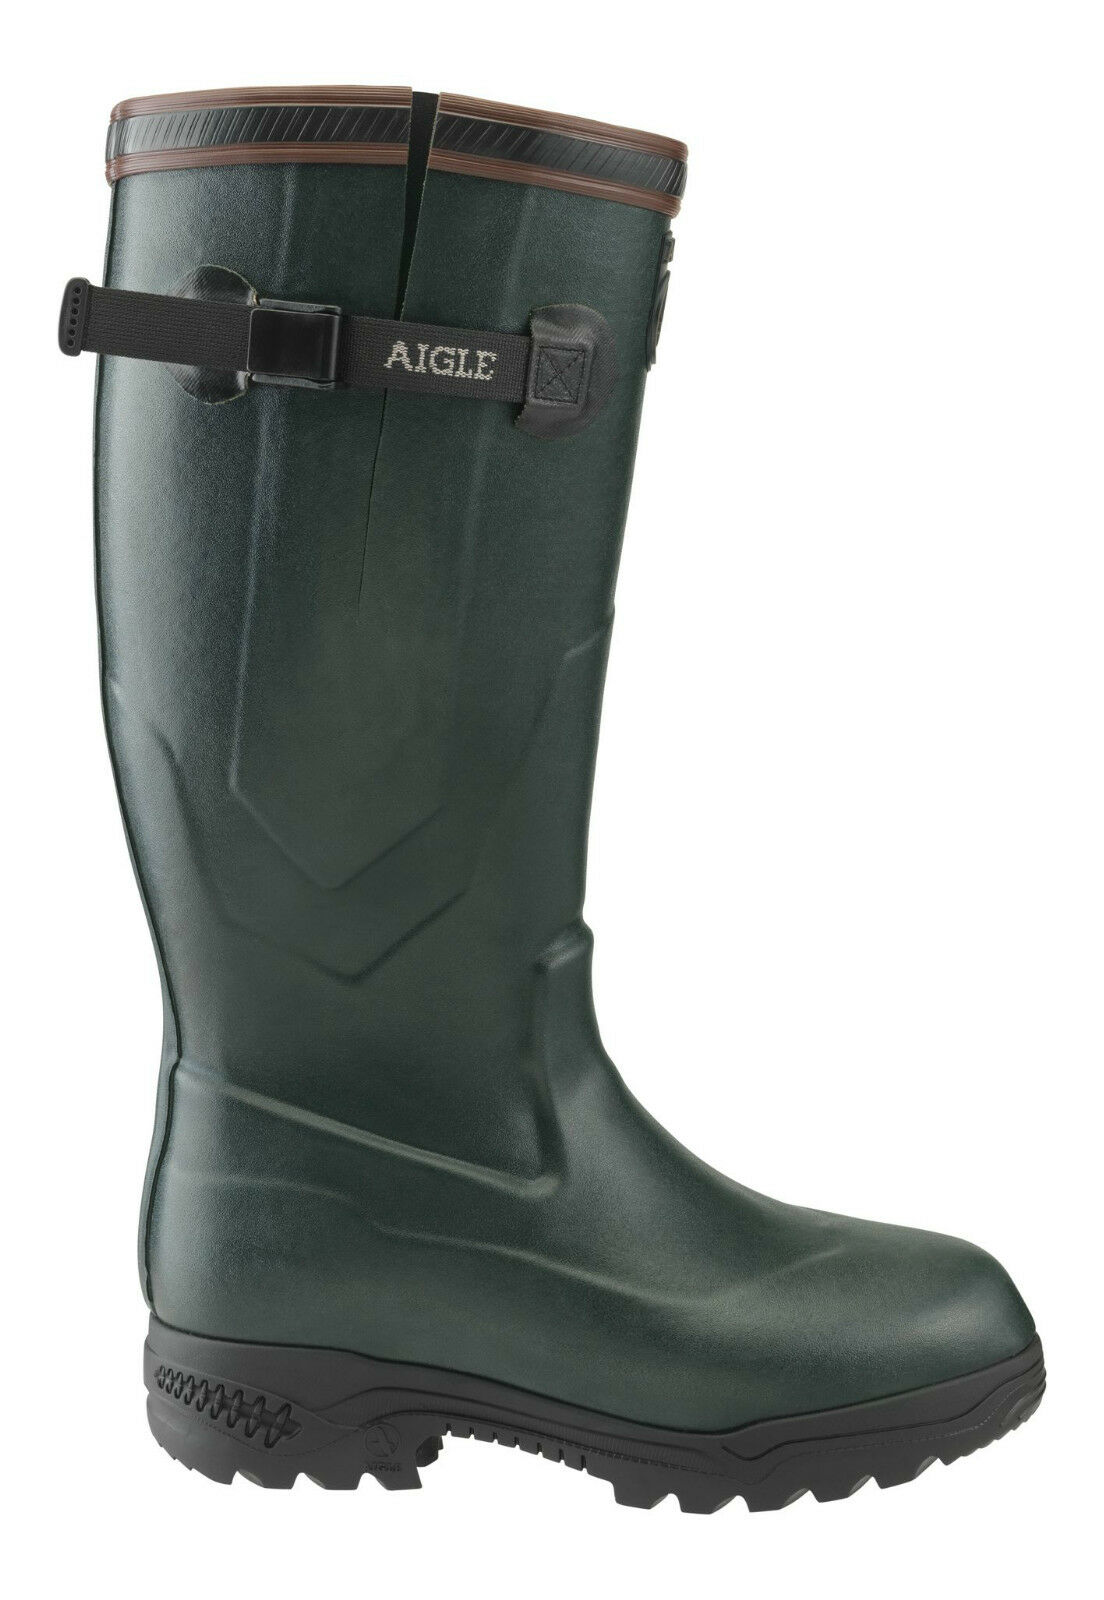 Aigle Wellies Course 2 Siberie Alaska Neoprene + Faux fur up to -40°C